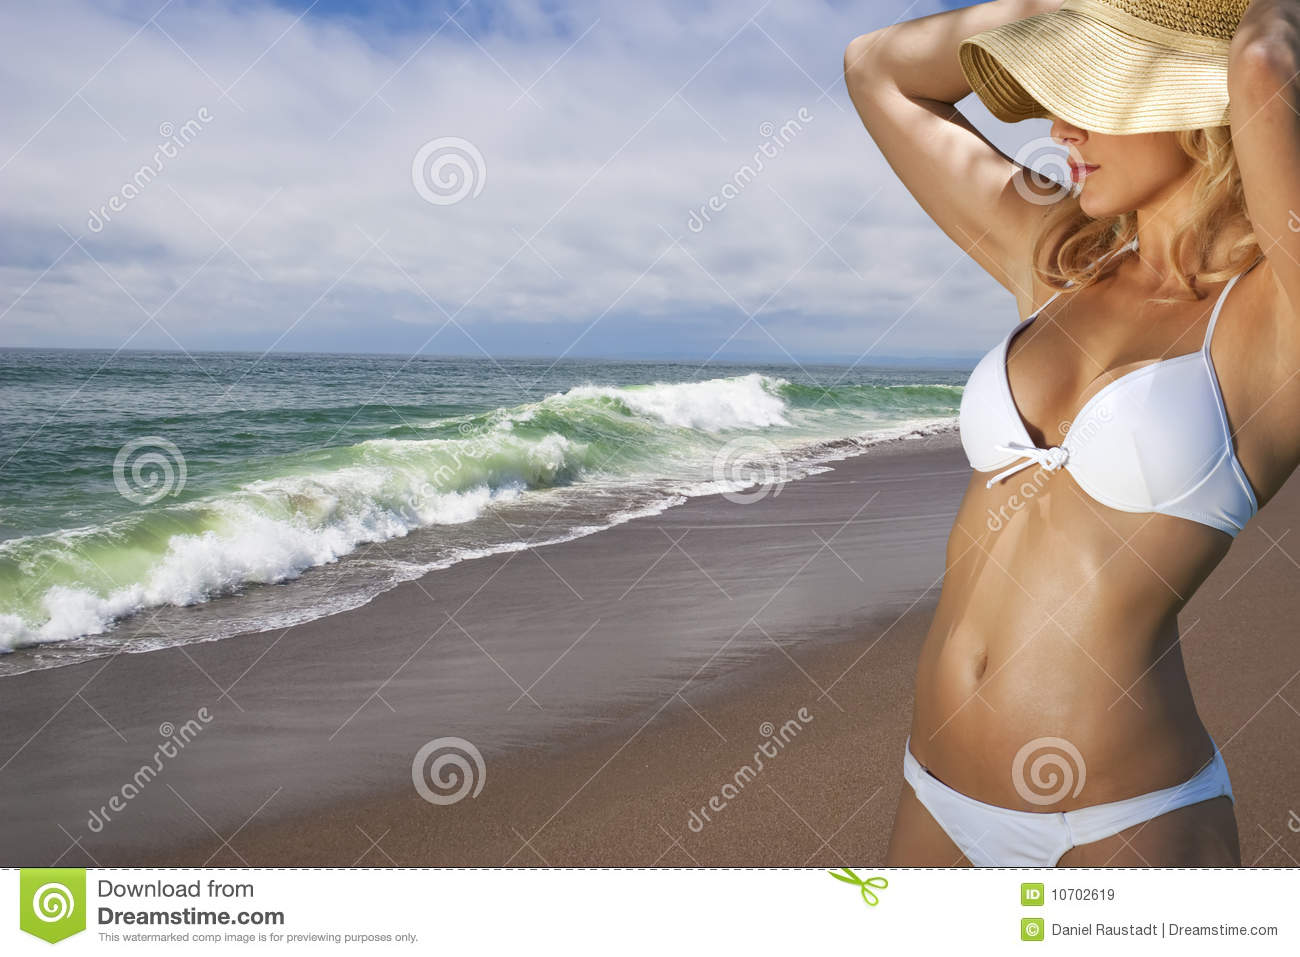 Young blonde woman vacationing at the beach